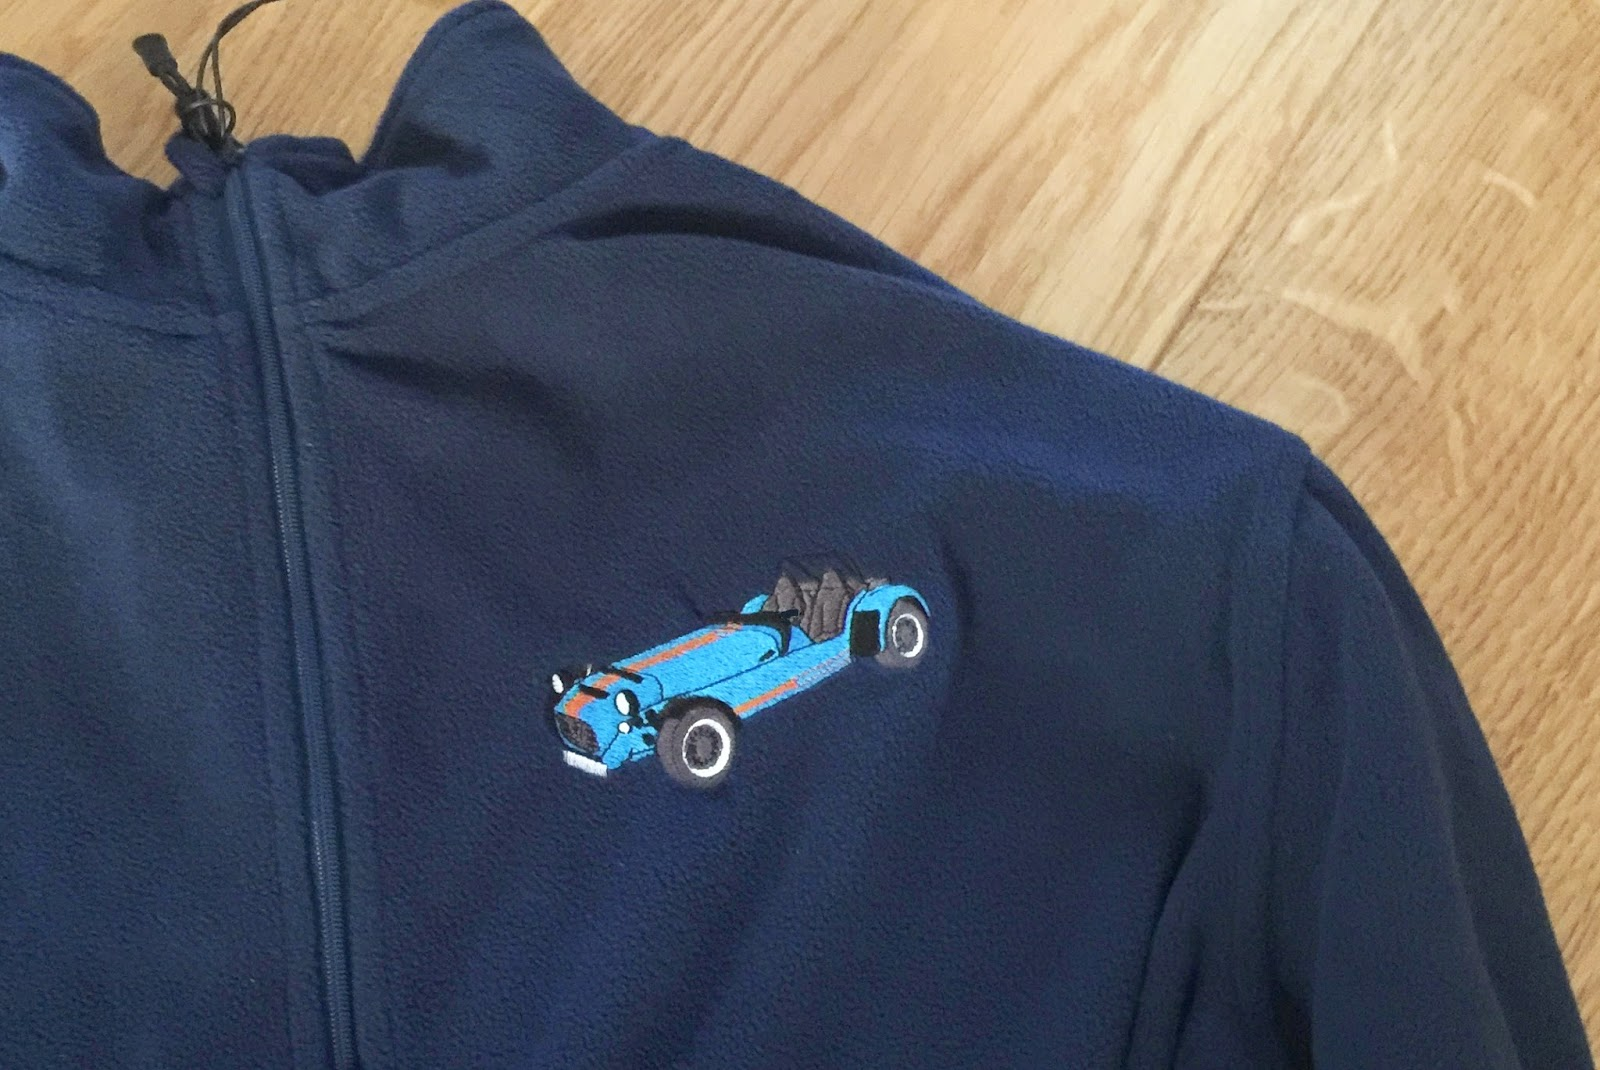 My new blatting fleece, also with embroidered Caterham